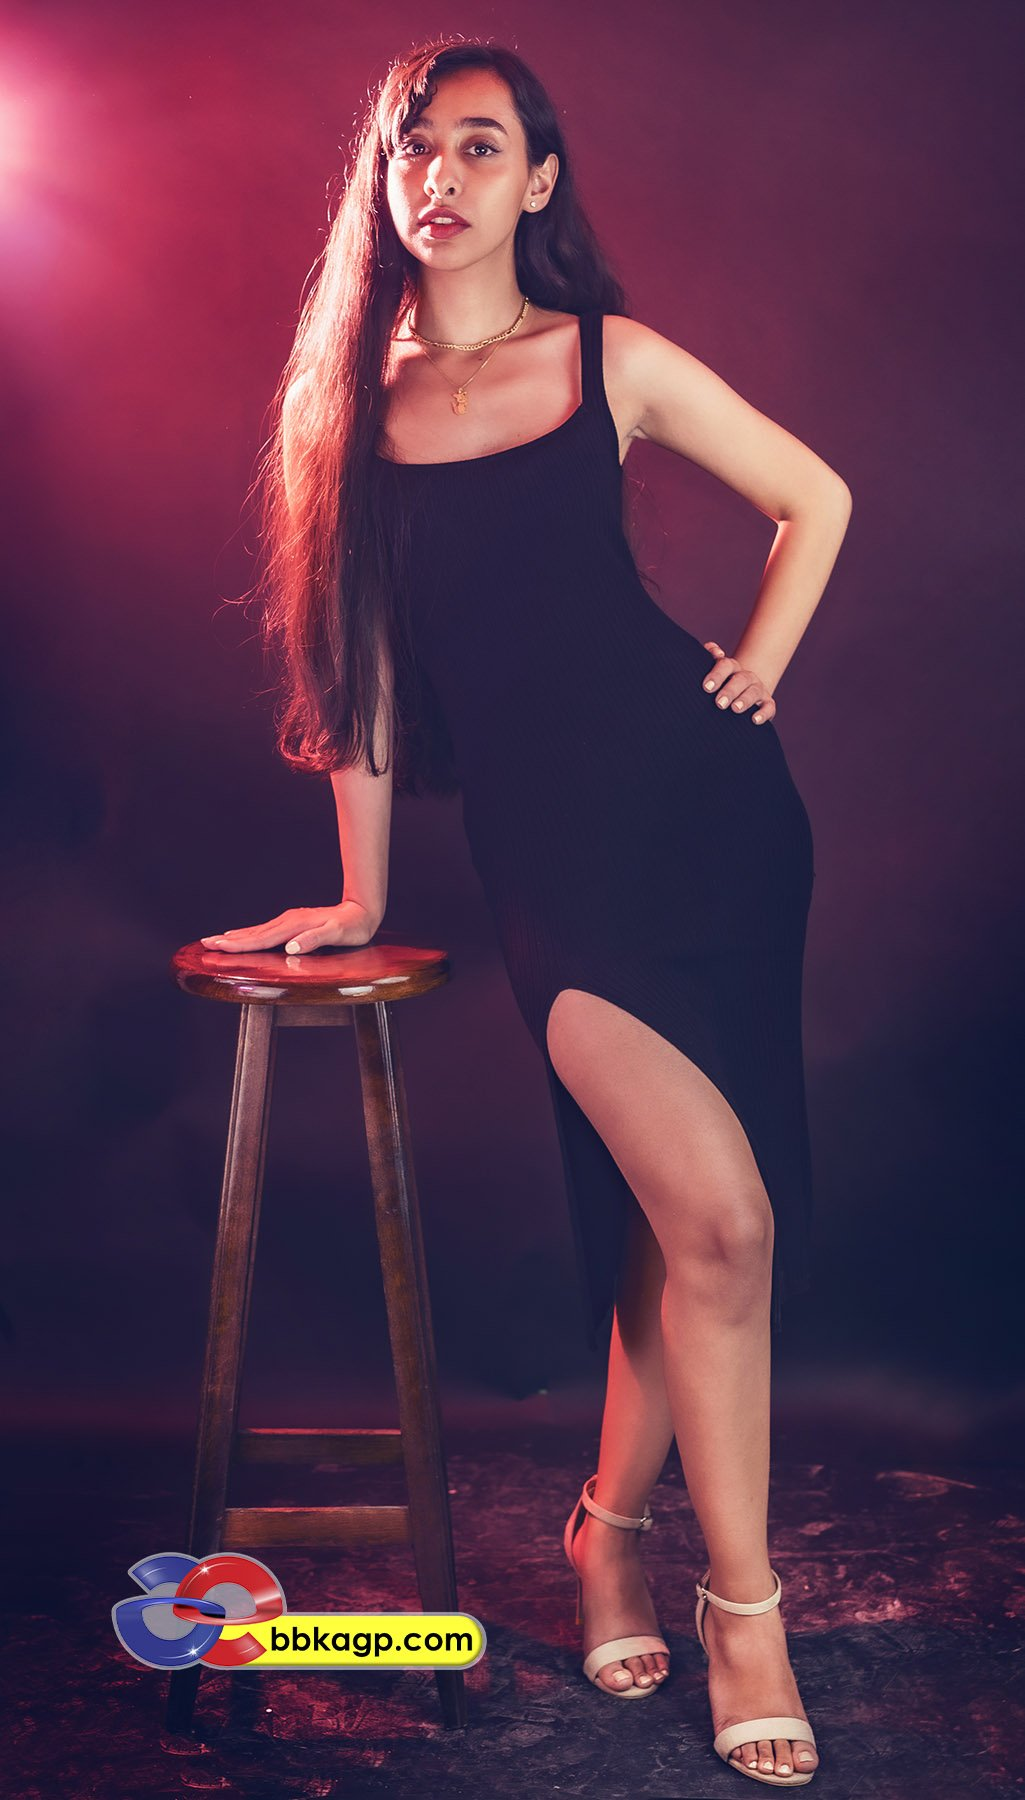 Professional Photography Services Fashion Model